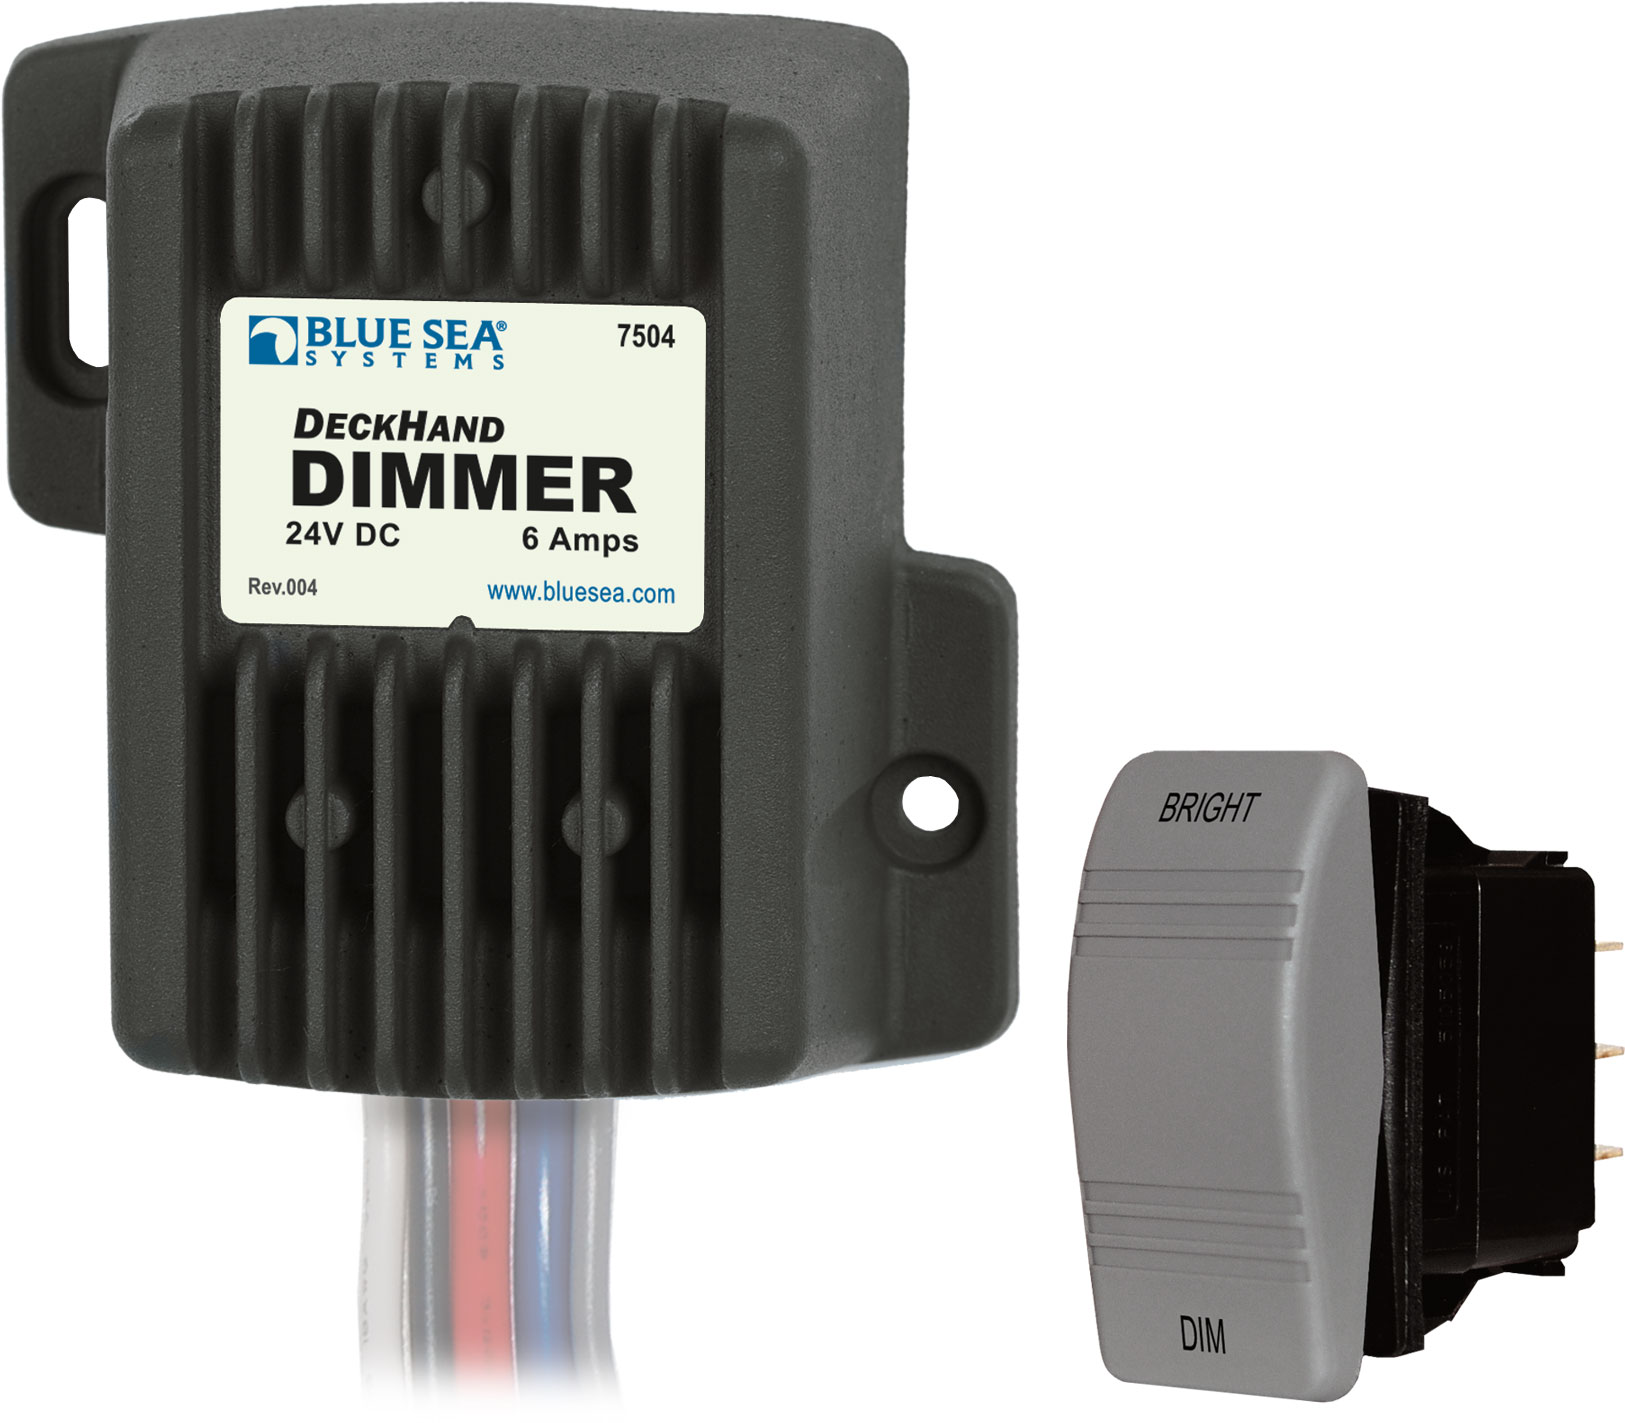 Deckhand Dimmer 24v Dc 6a Blue Sea Systems Switches Electrical 101 Product Image